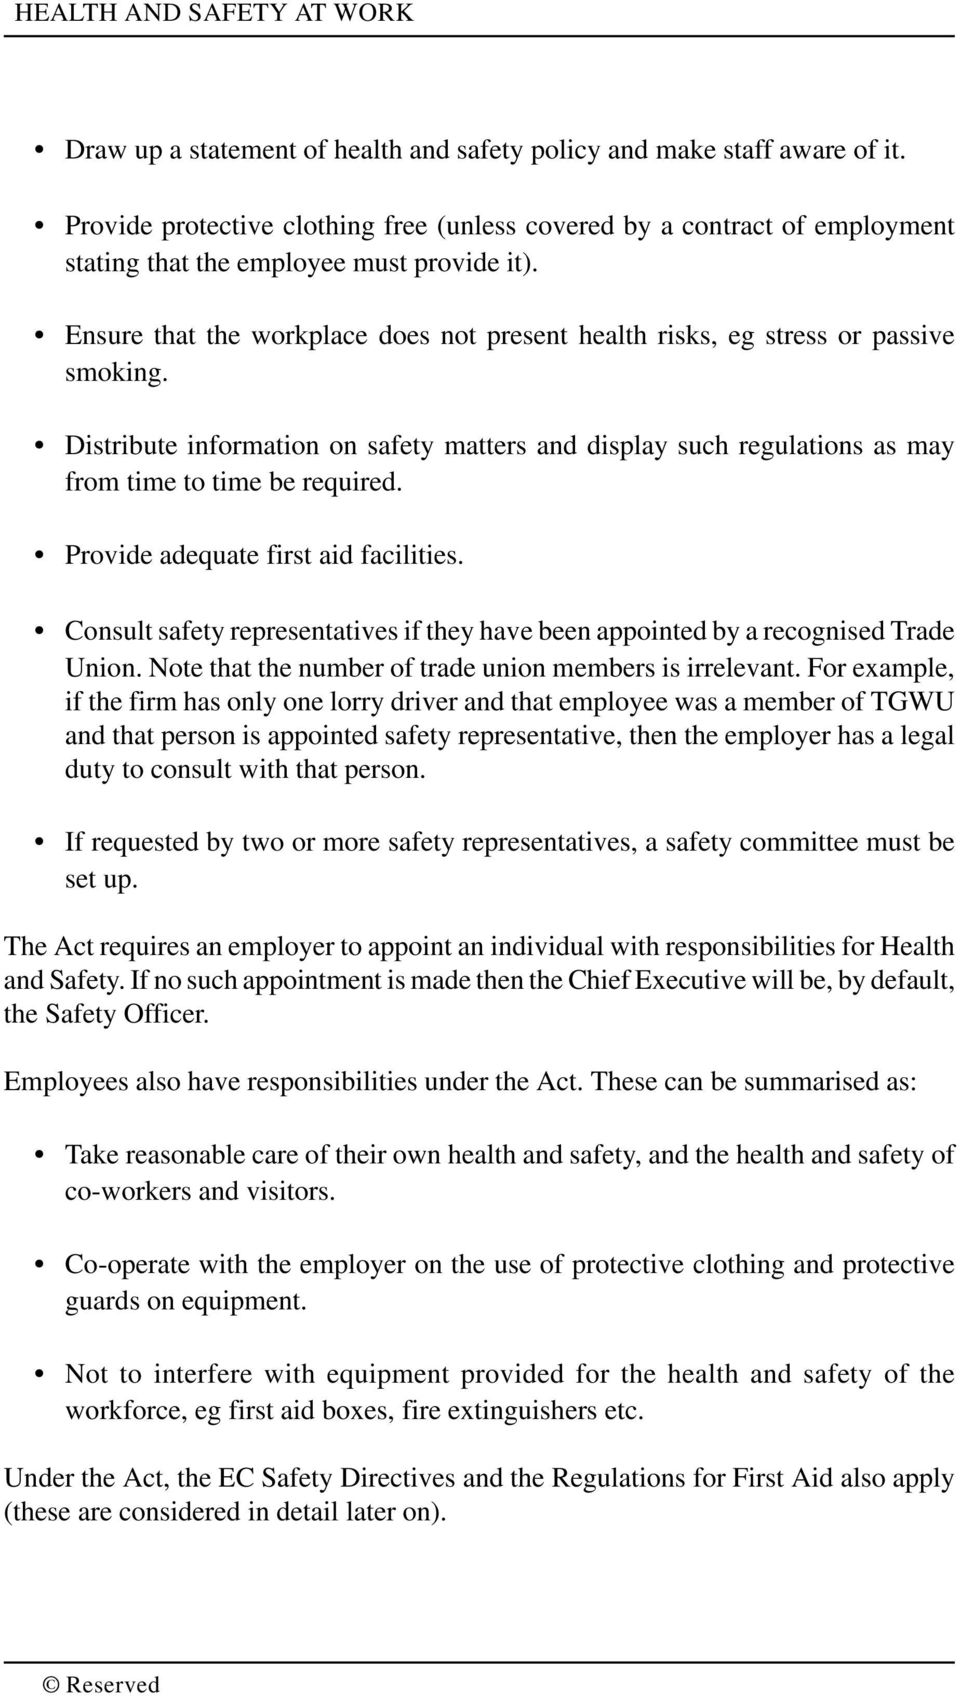 Provide adequate first aid facilities. Consult safety representatives if they have been appointed by a recognised Trade Union. Note that the number of trade union members is irrelevant.